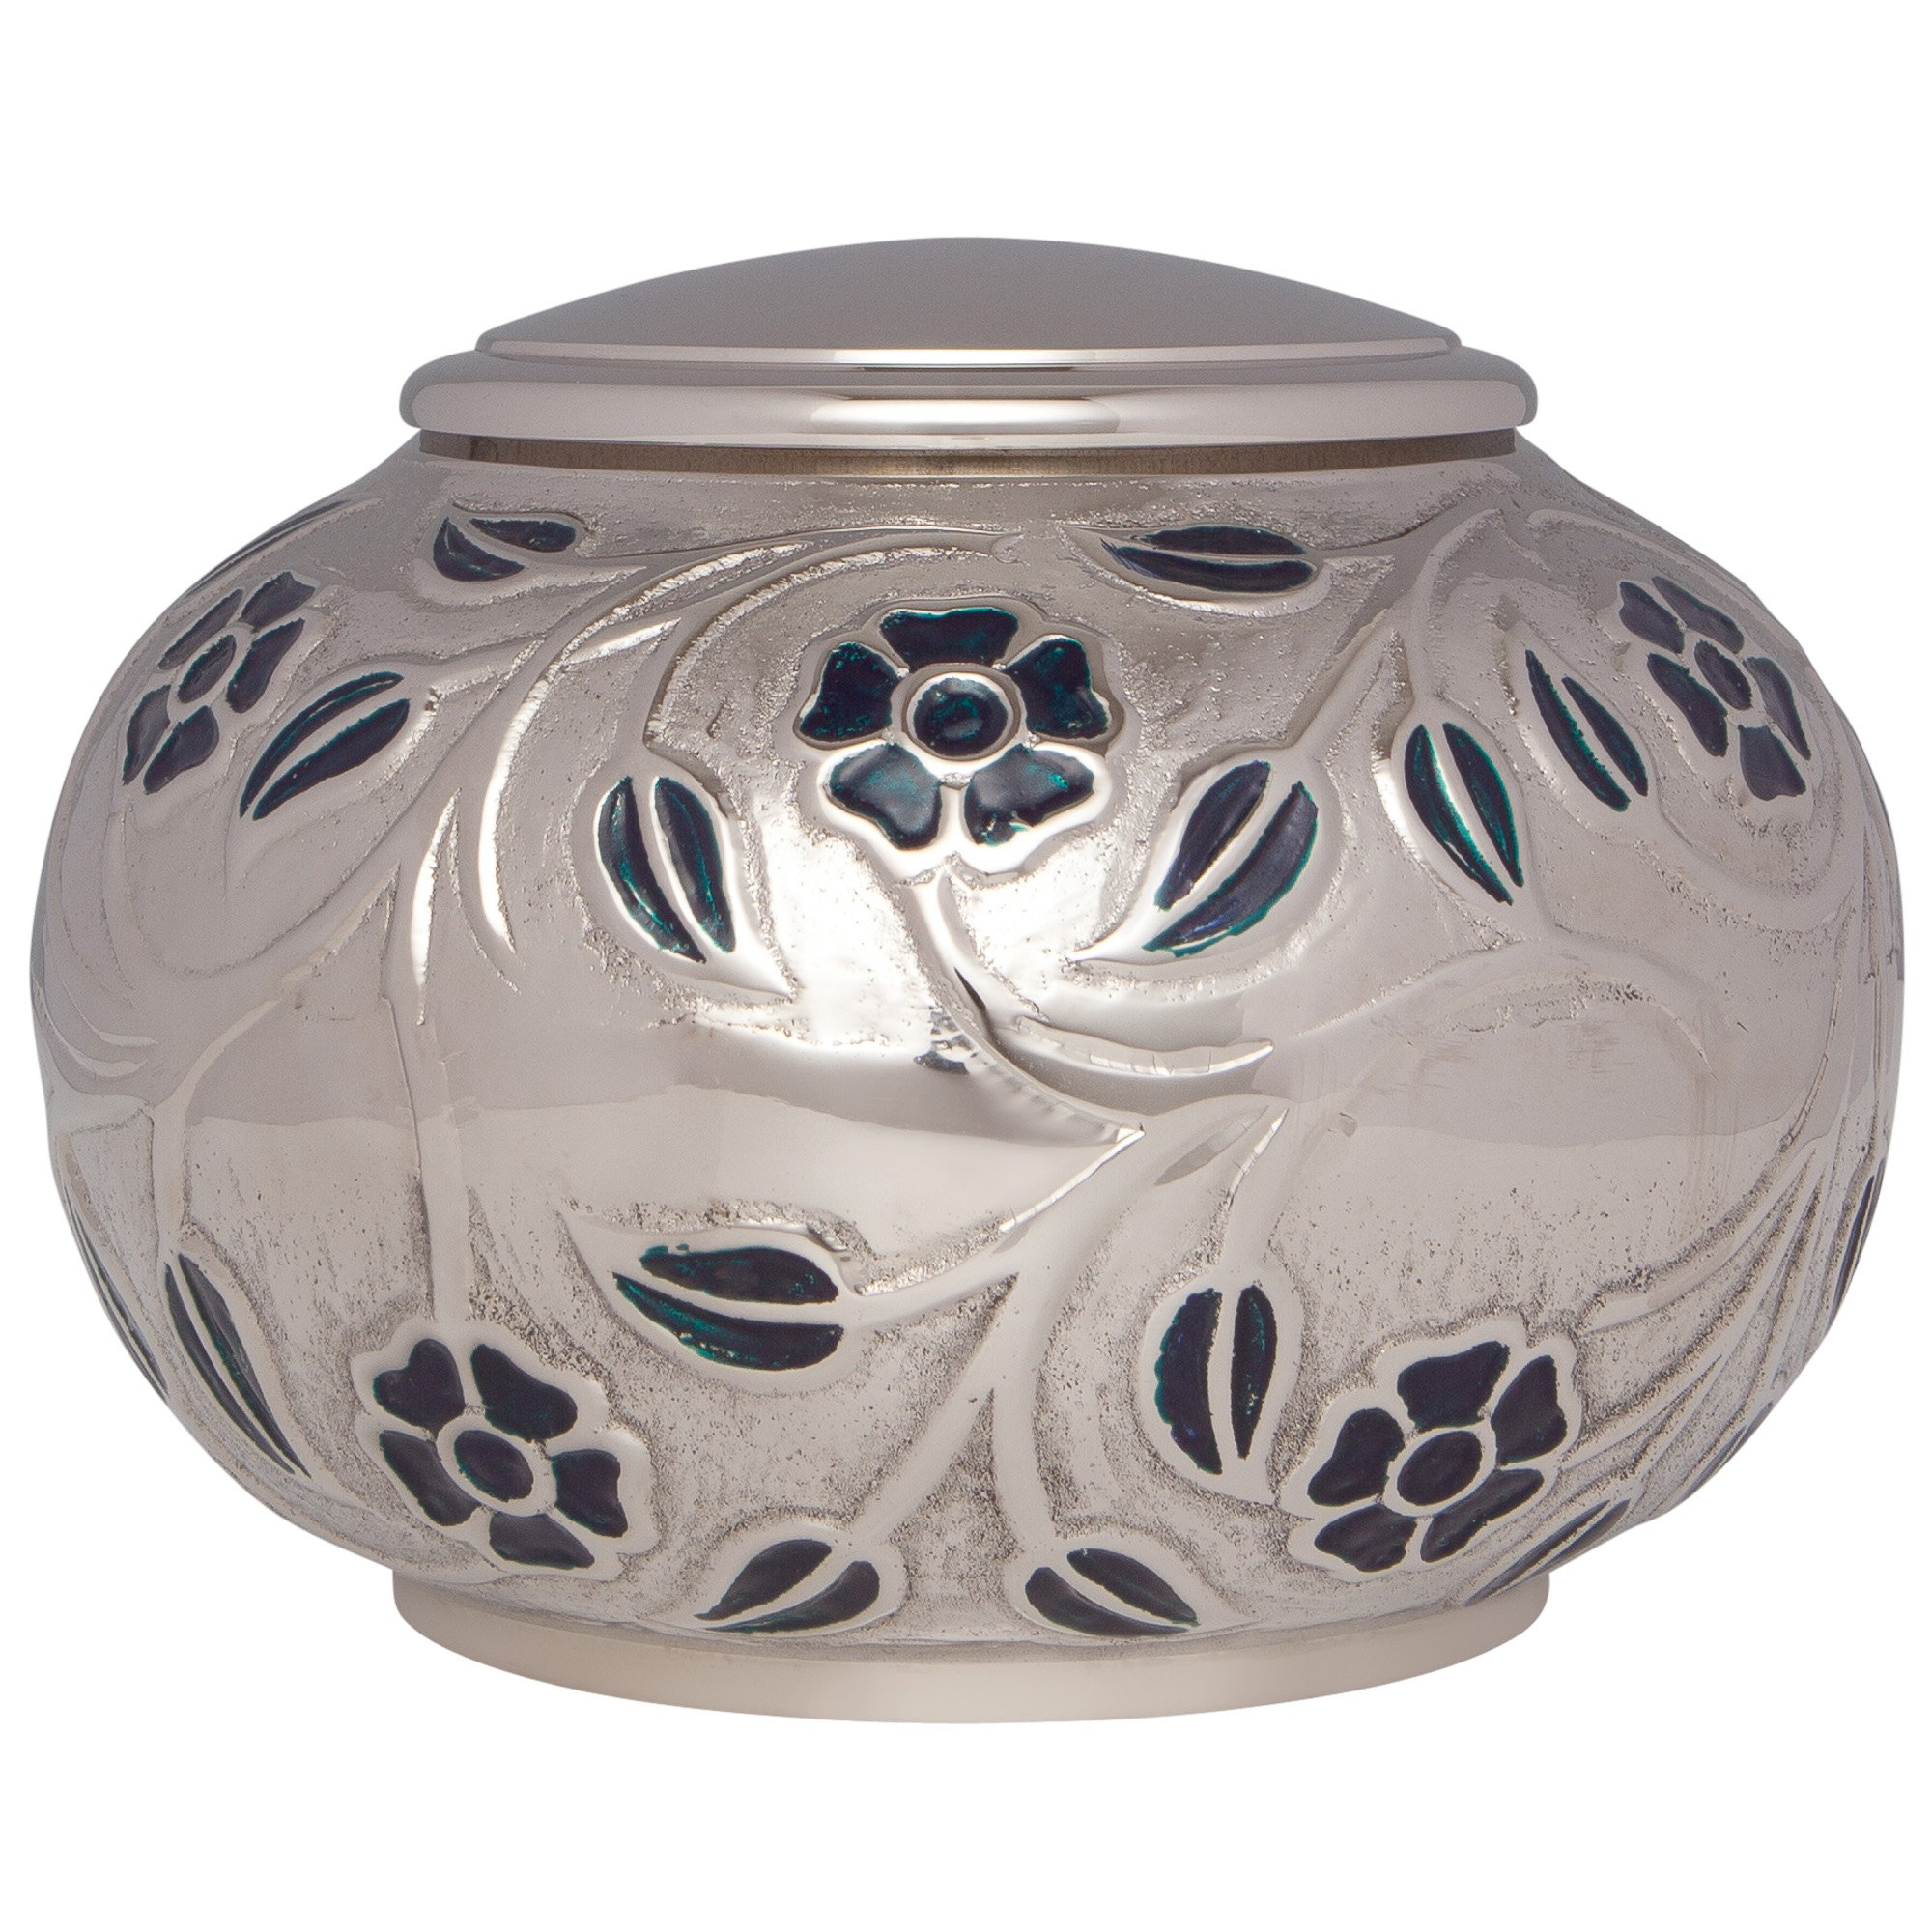 Silver Vines Funeral Urn by Liliane Memorials - Cremation Urn for Human Ashes - Hand Made in Brass - Suitable for Cemetery Burial or Niche - Large Size fits remains of Adults up to 180 lbs by Liliane Memorials (Image #1)